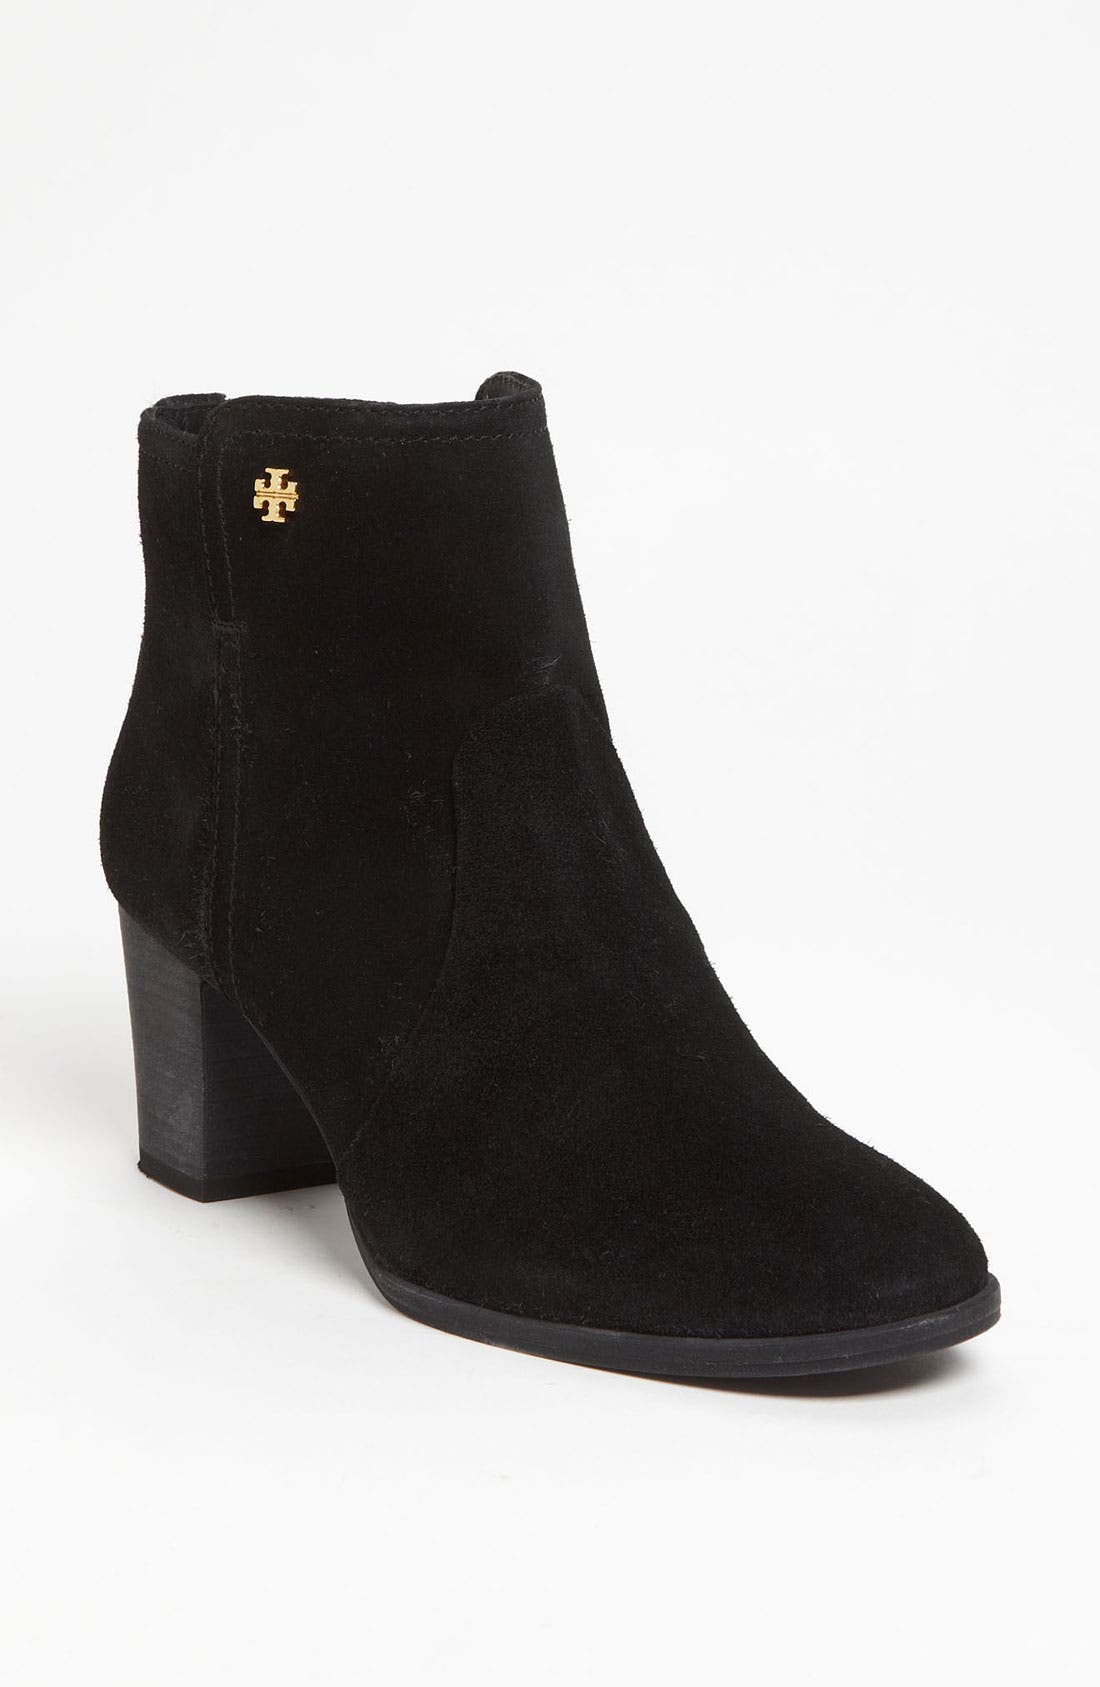 Main Image - Tory Burch 'Sabe' Bootie